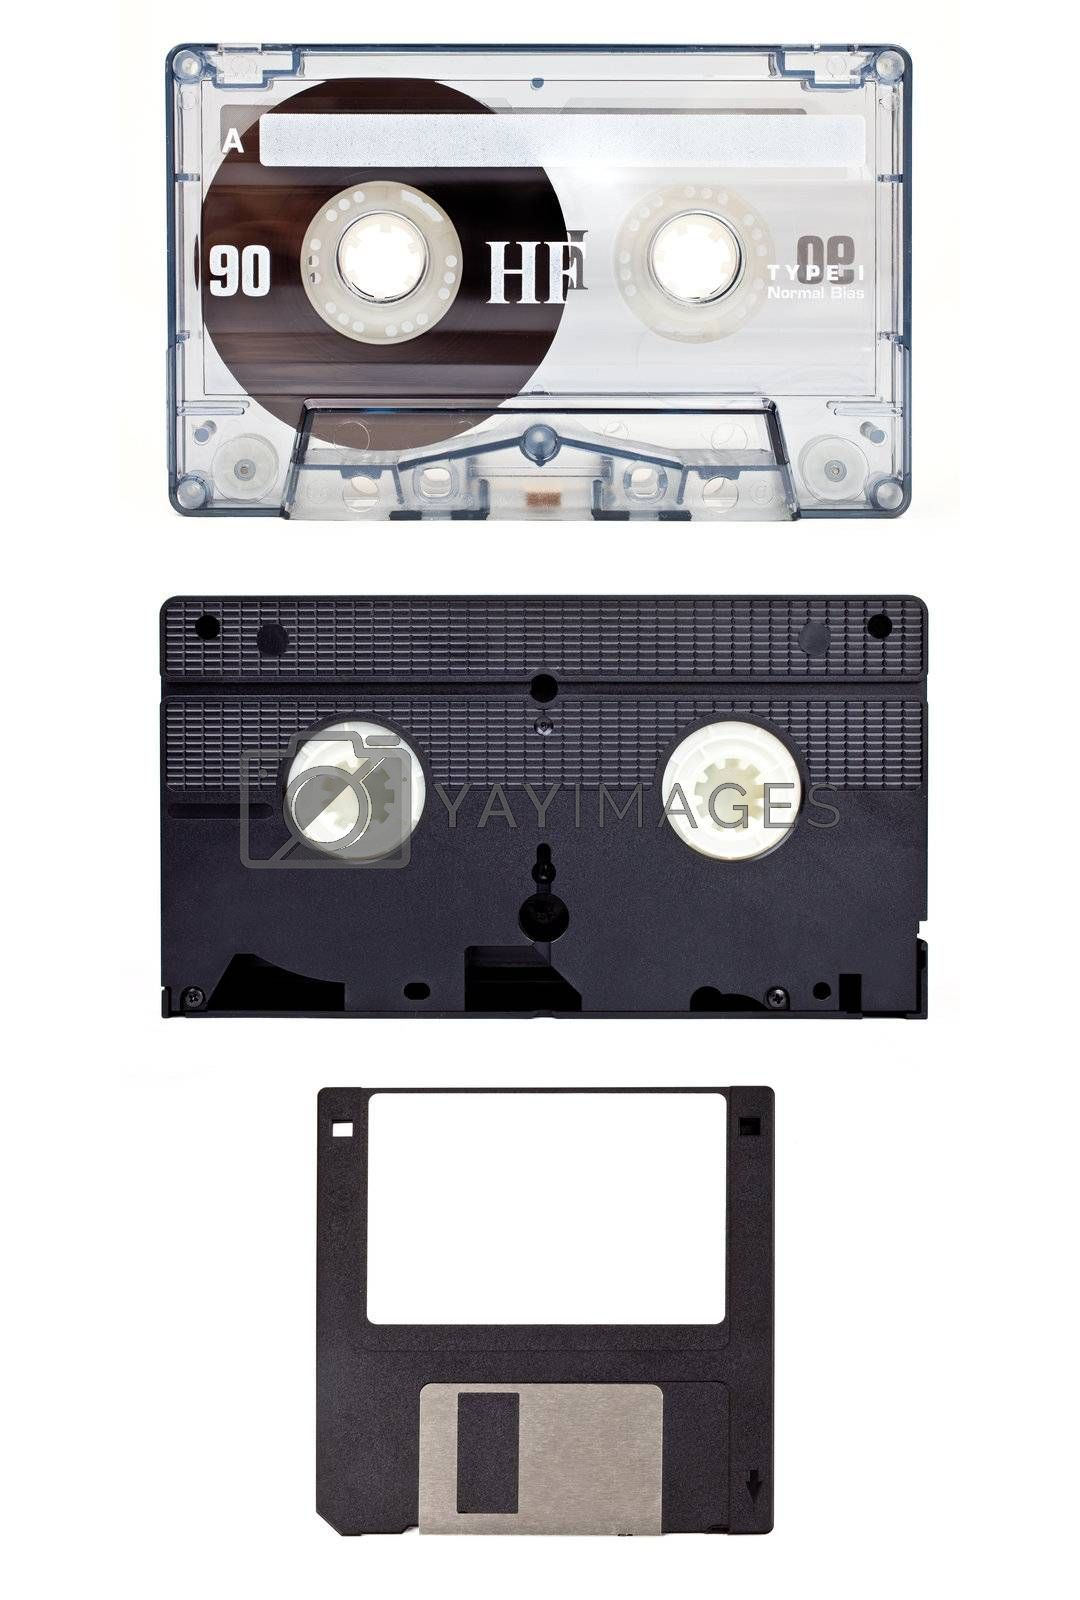 Old technology devices - Audio Cassette Tape, Video Tape and a Floppy Disc.